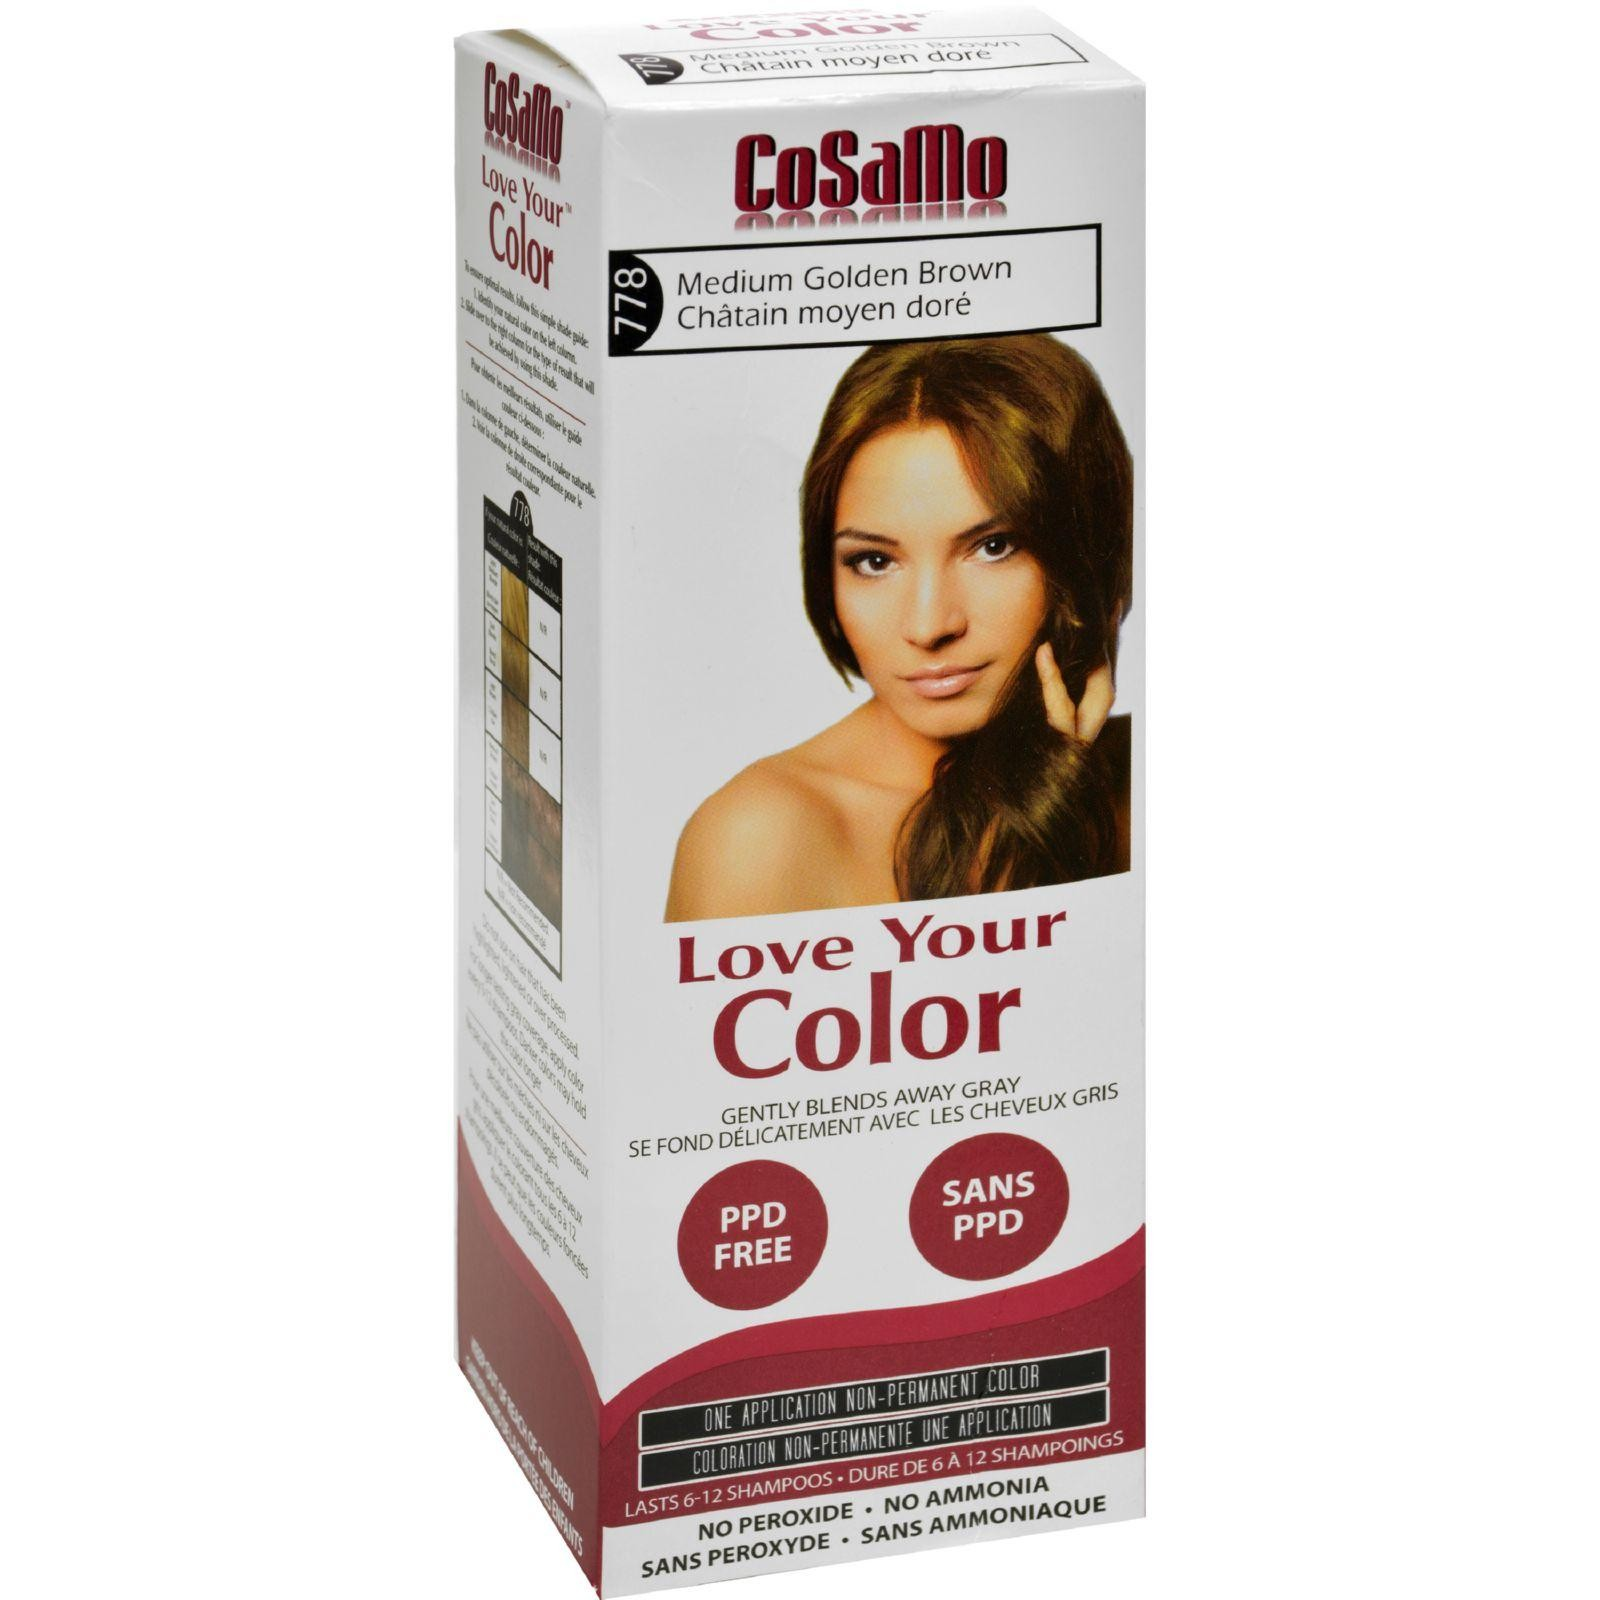 Love Your Color Hair Color Cosamo Non Permanent Med Gold Brown